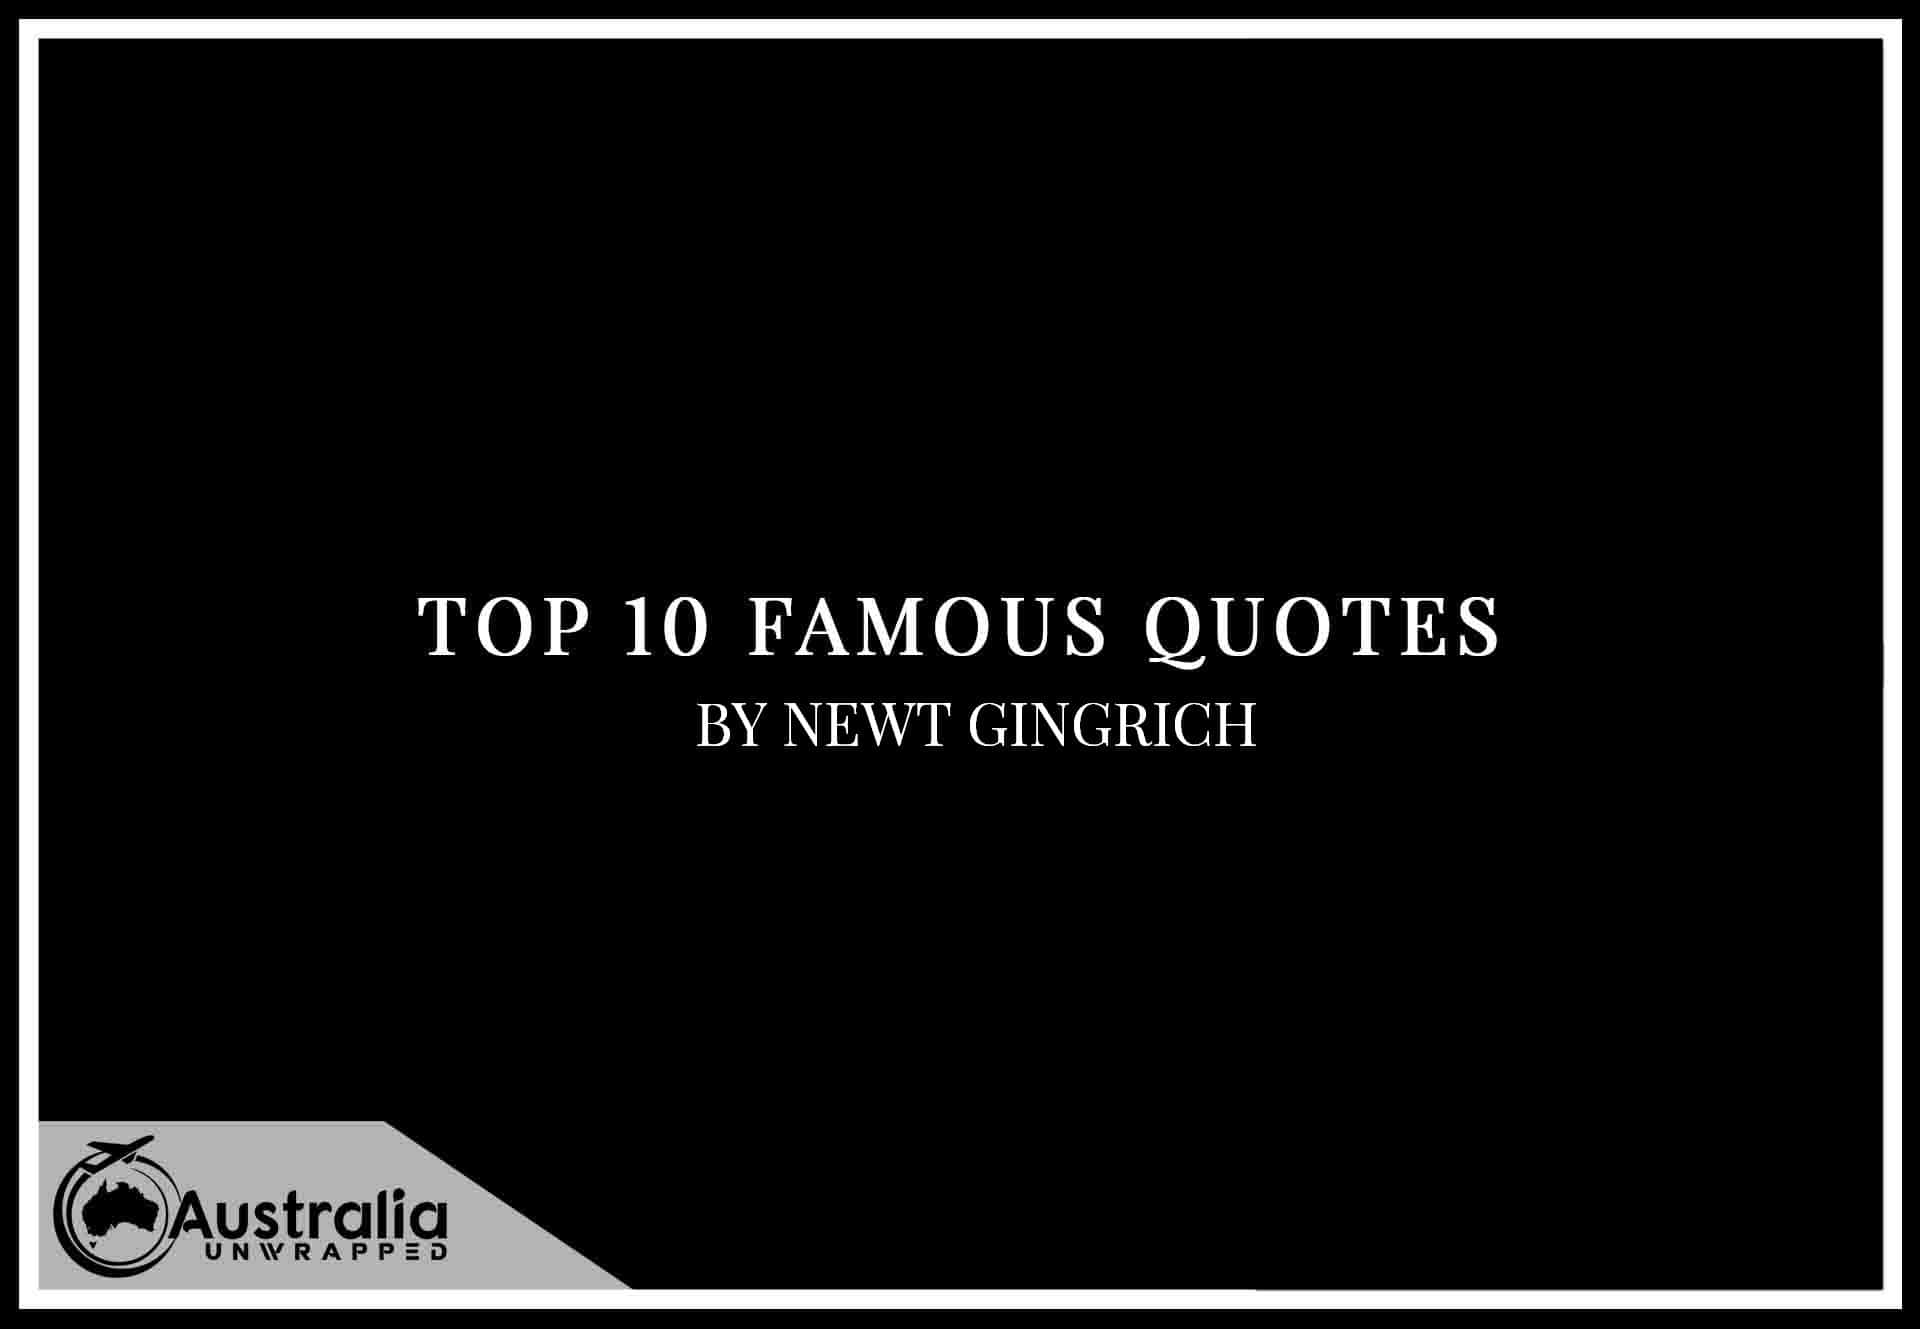 Top 10 Famous Quotes by Author Newt Gingrich